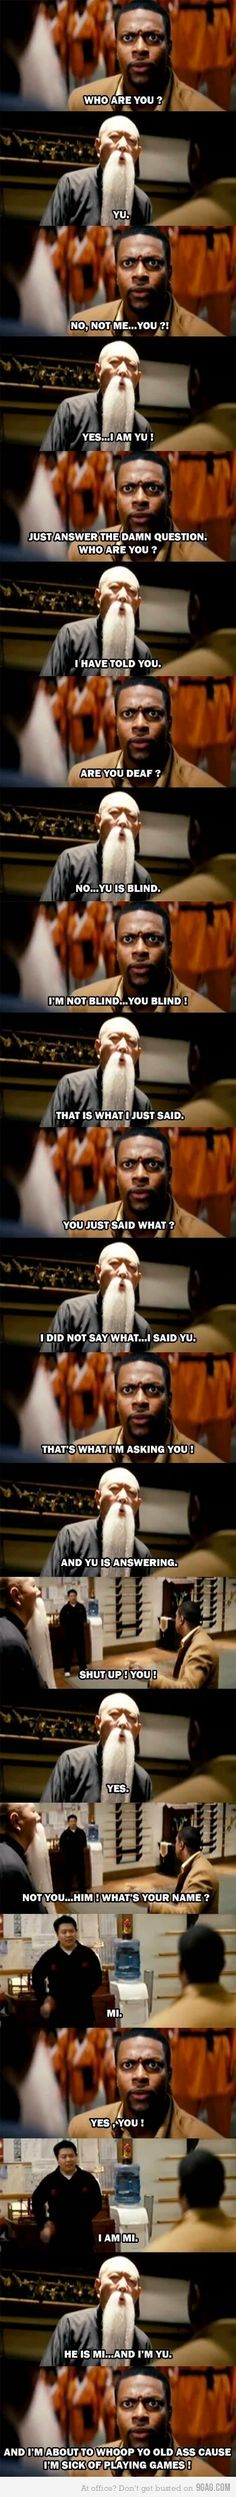 This is from the movie Rush Hour... you should watch it, its HILARIOUS! http://ibeebz.com